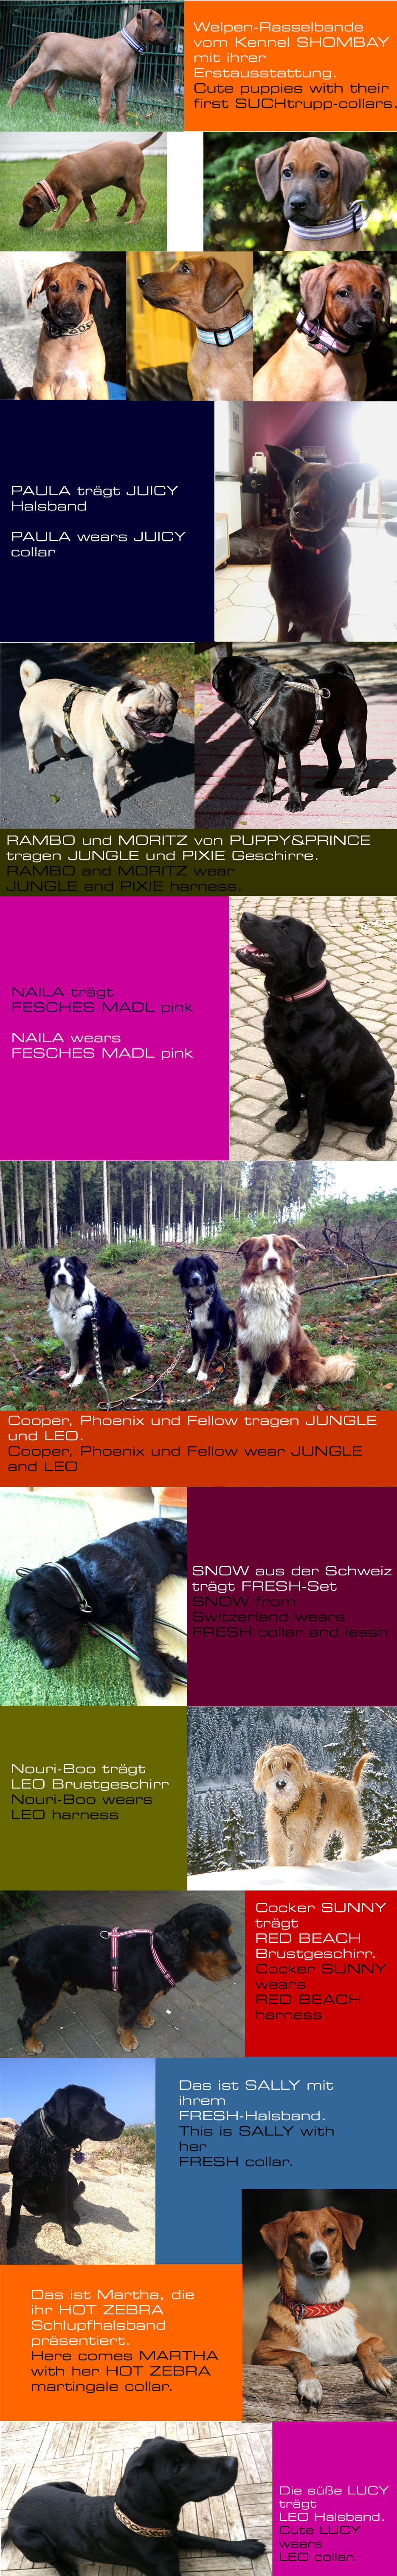 Happy_customers,_Suchtrupp,_Hundehalsbaender,_Hundeleinen,_Brustgeschirre,_dog_collars,_dog_leashes_4_Kopie